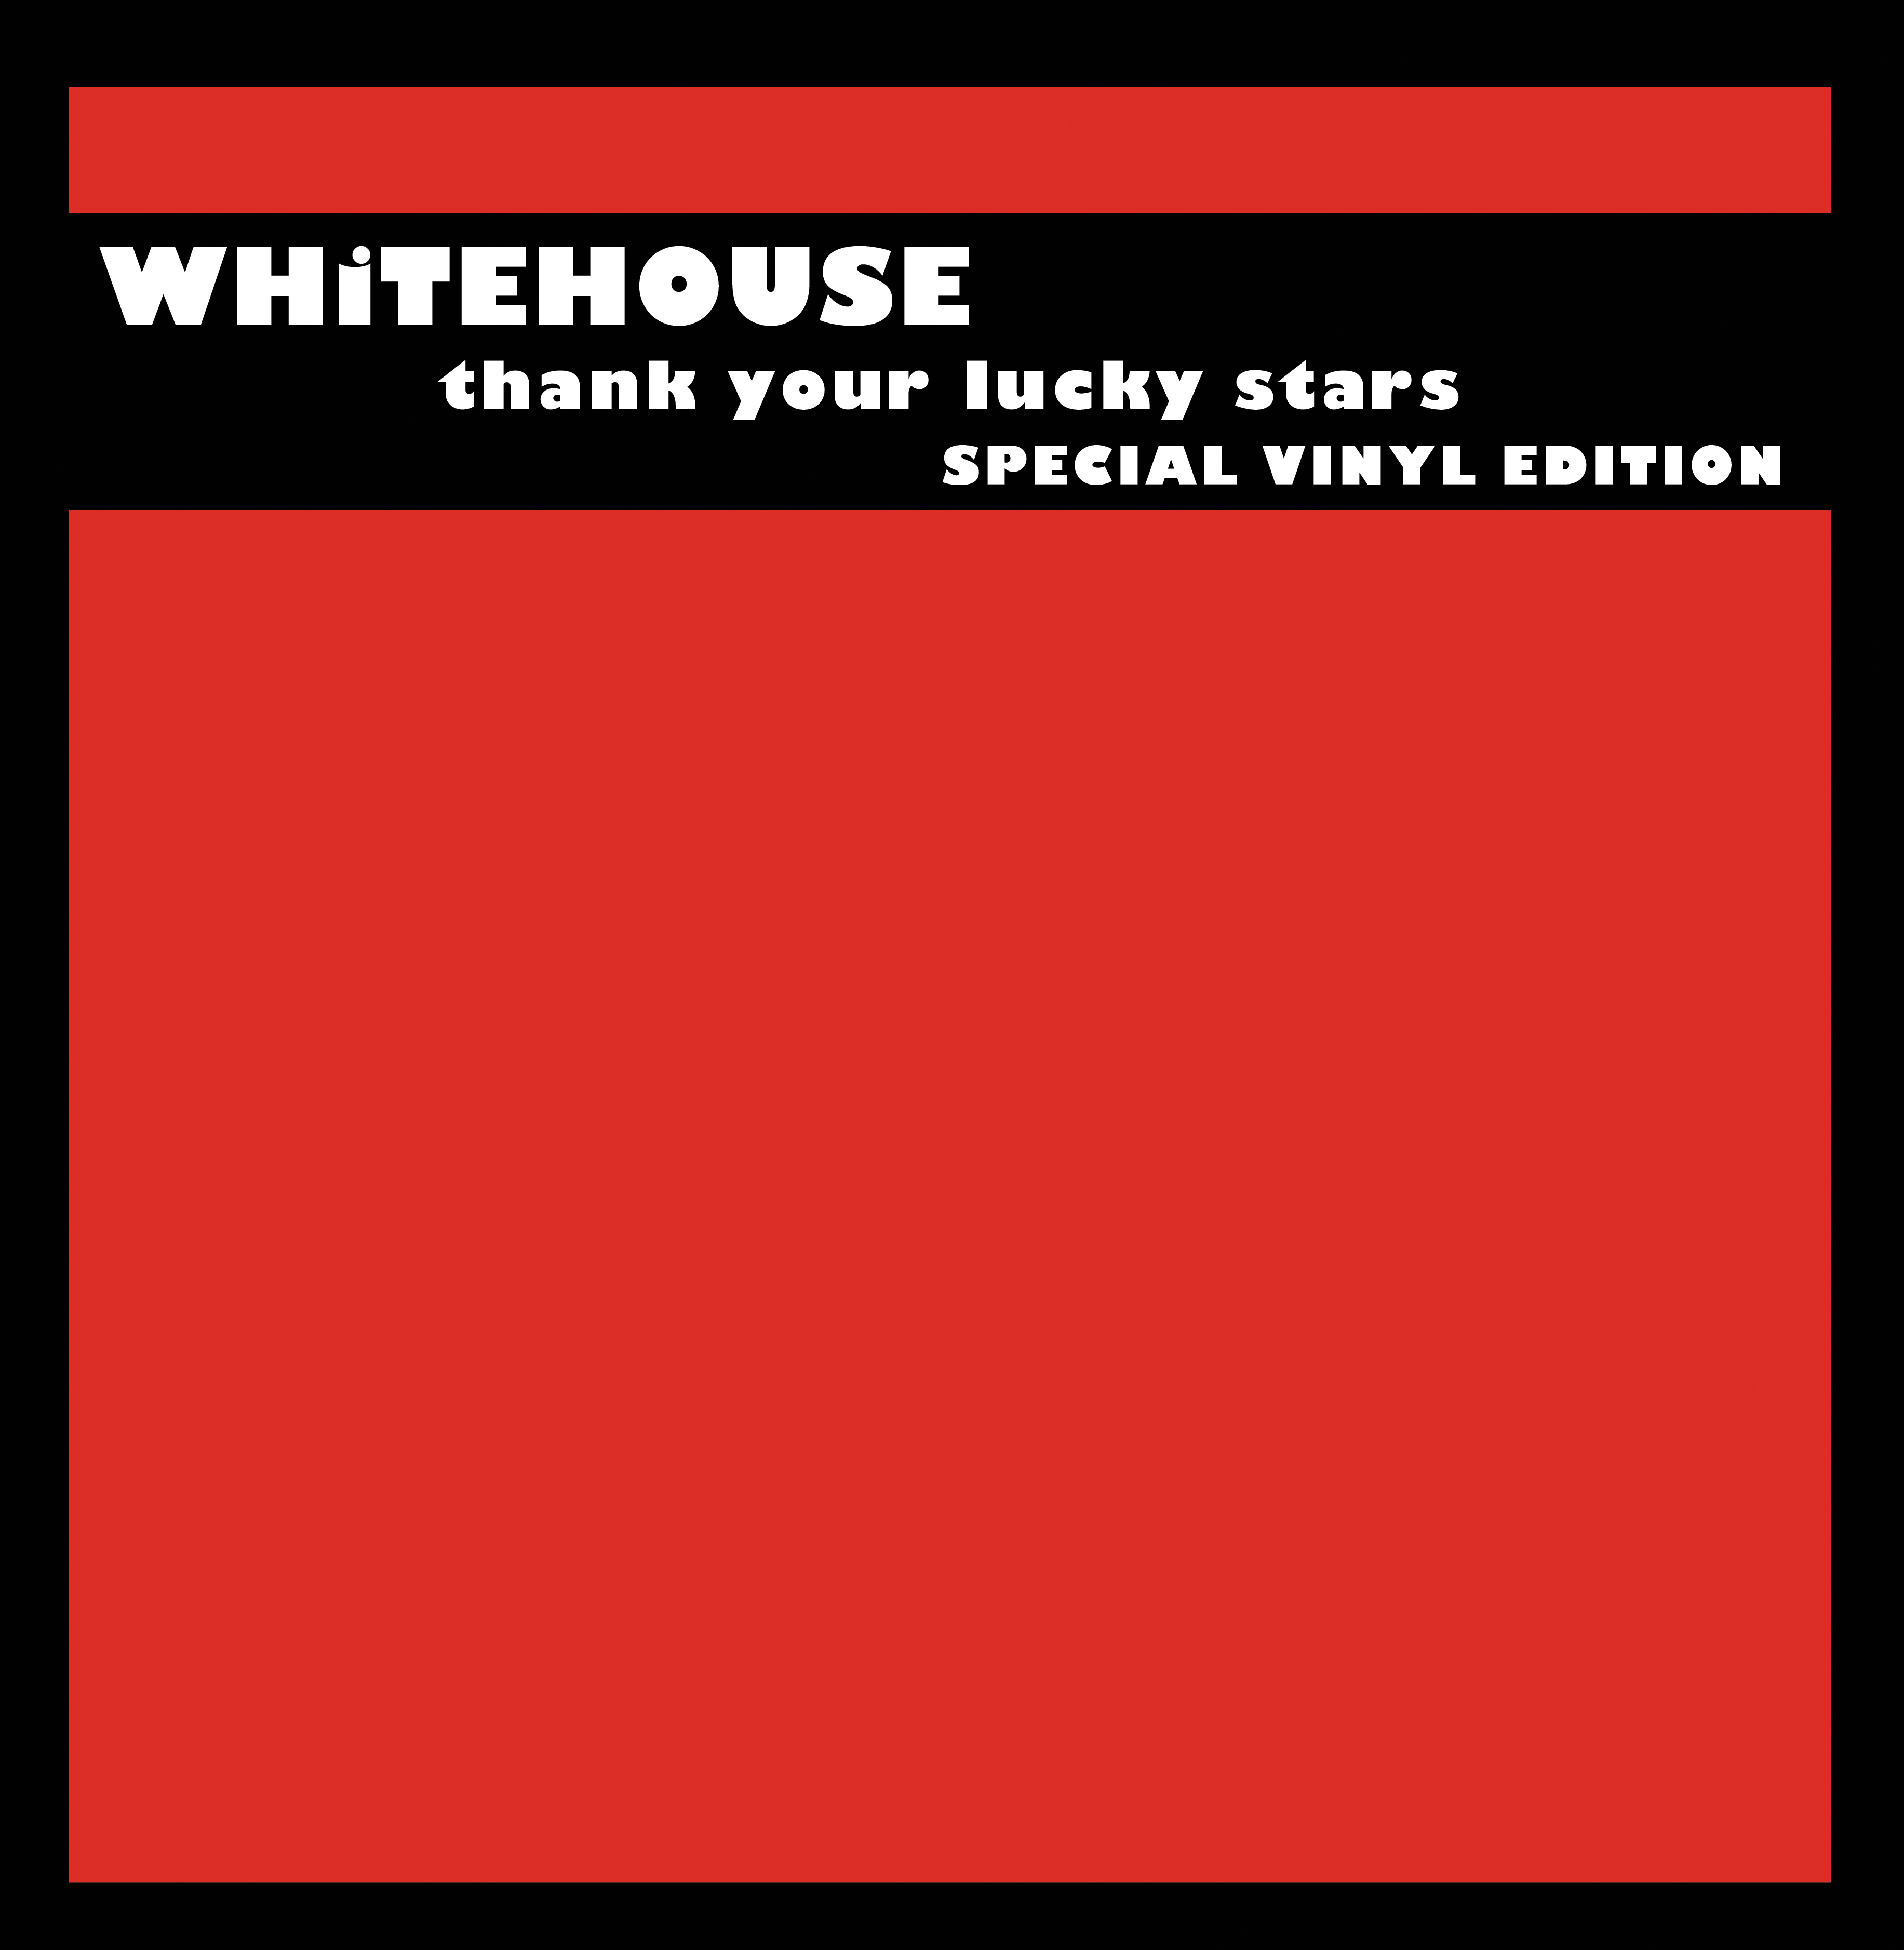 THANK YOUR LUCKY STARS SPECIAL VINYL EDITION